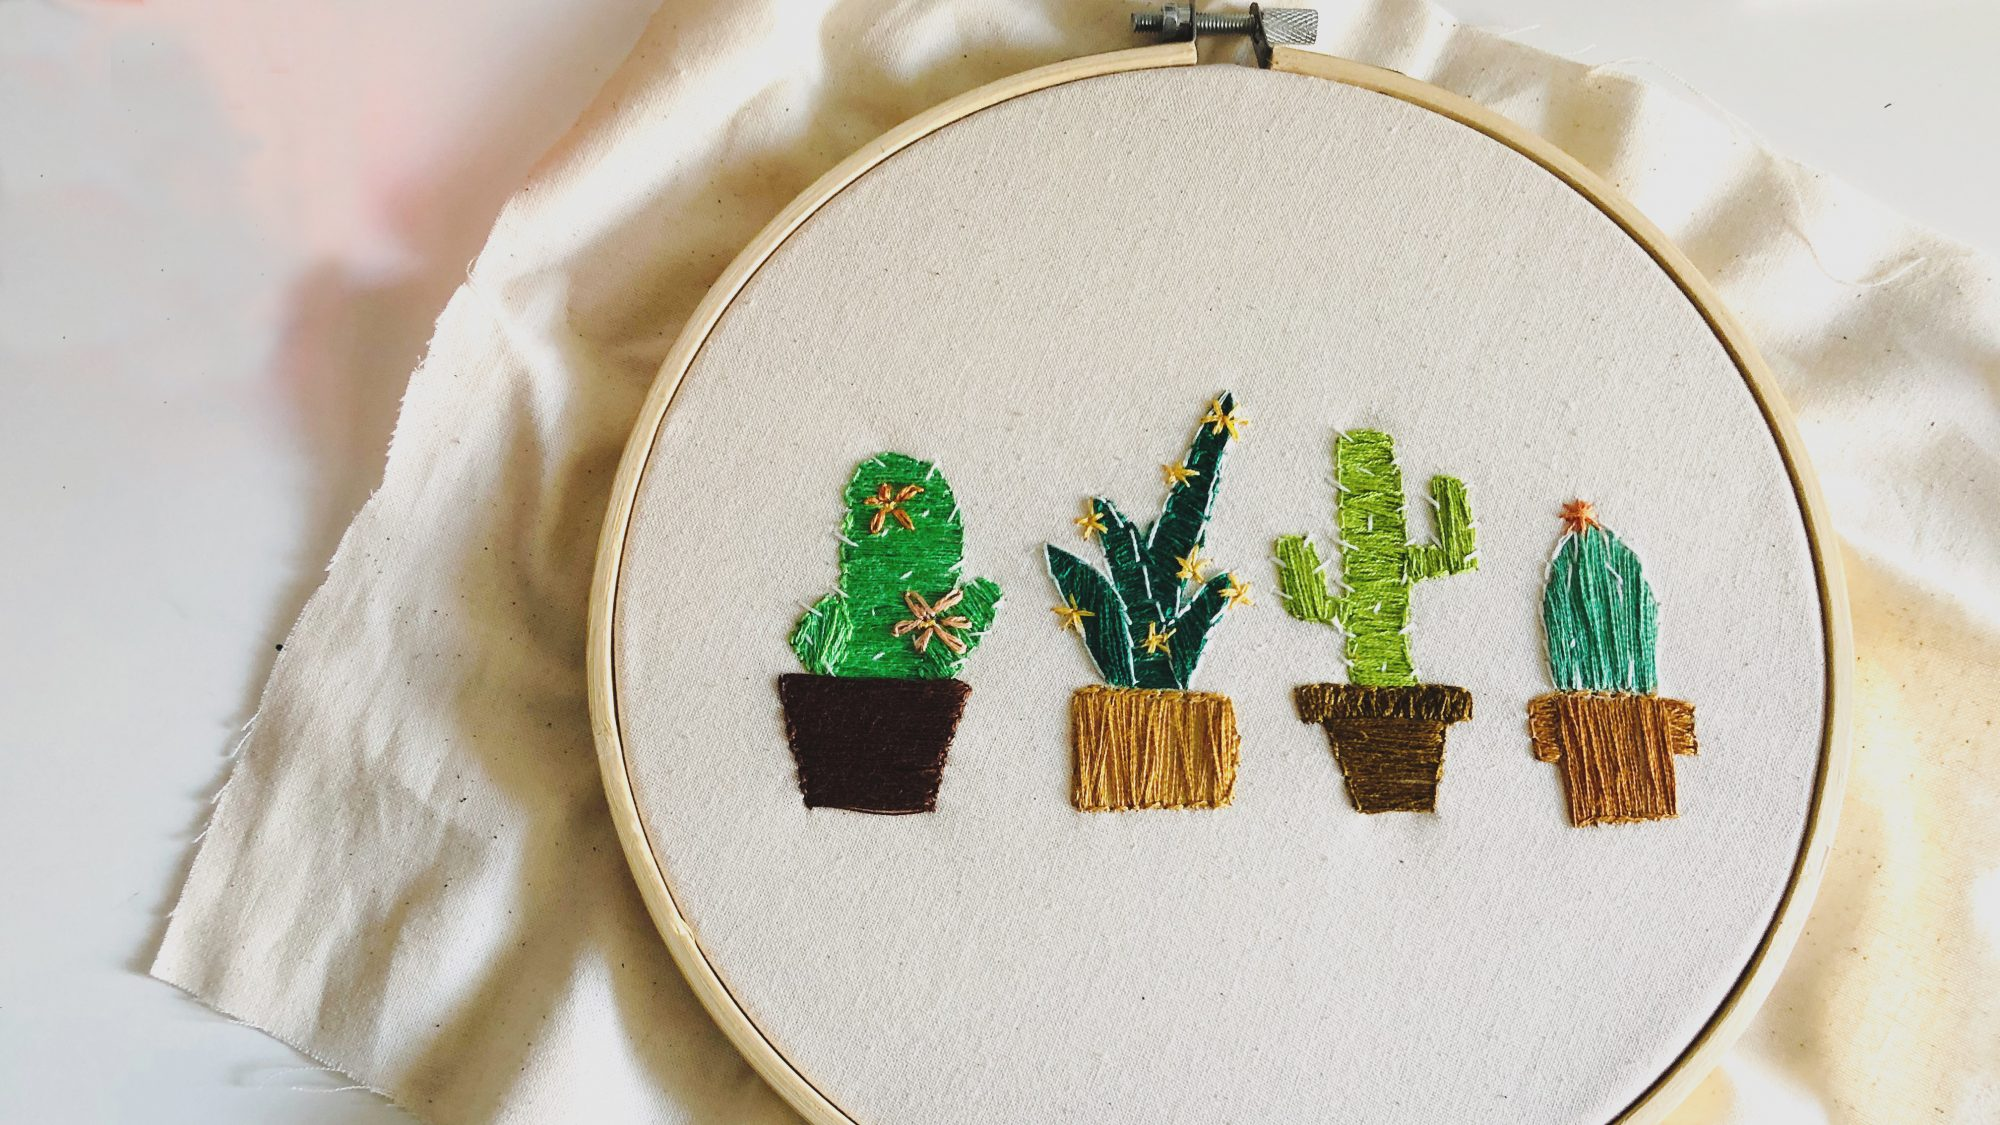 DIY Christmas gifts - ideas for DIY or homemade Christmas and holiday gifts (cross stitch)